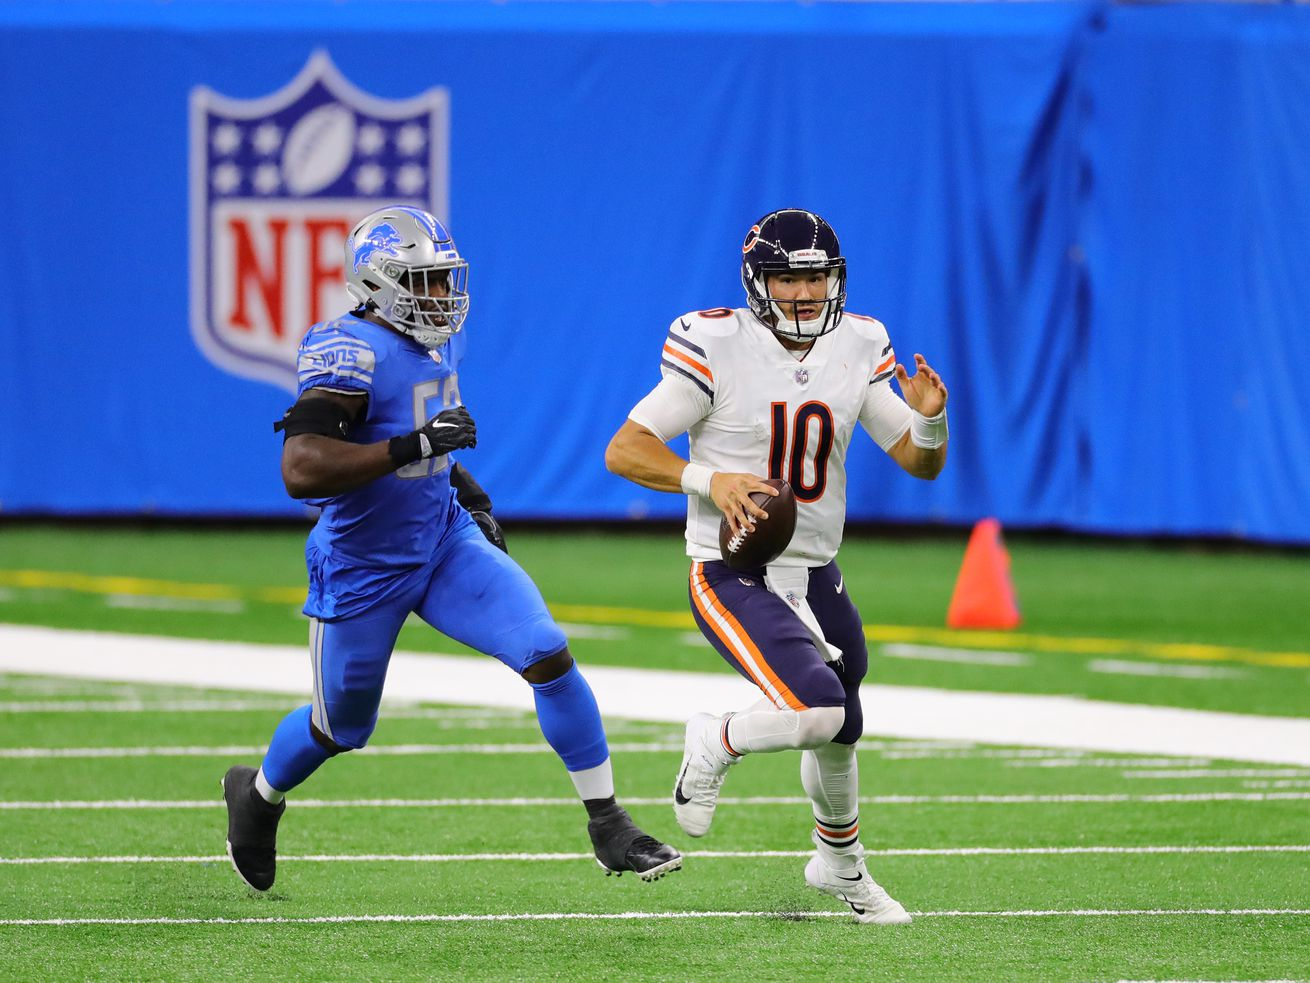 Polling Place: How will Bears QB Mitch Trubisky fare in Week 2 against the Giants?